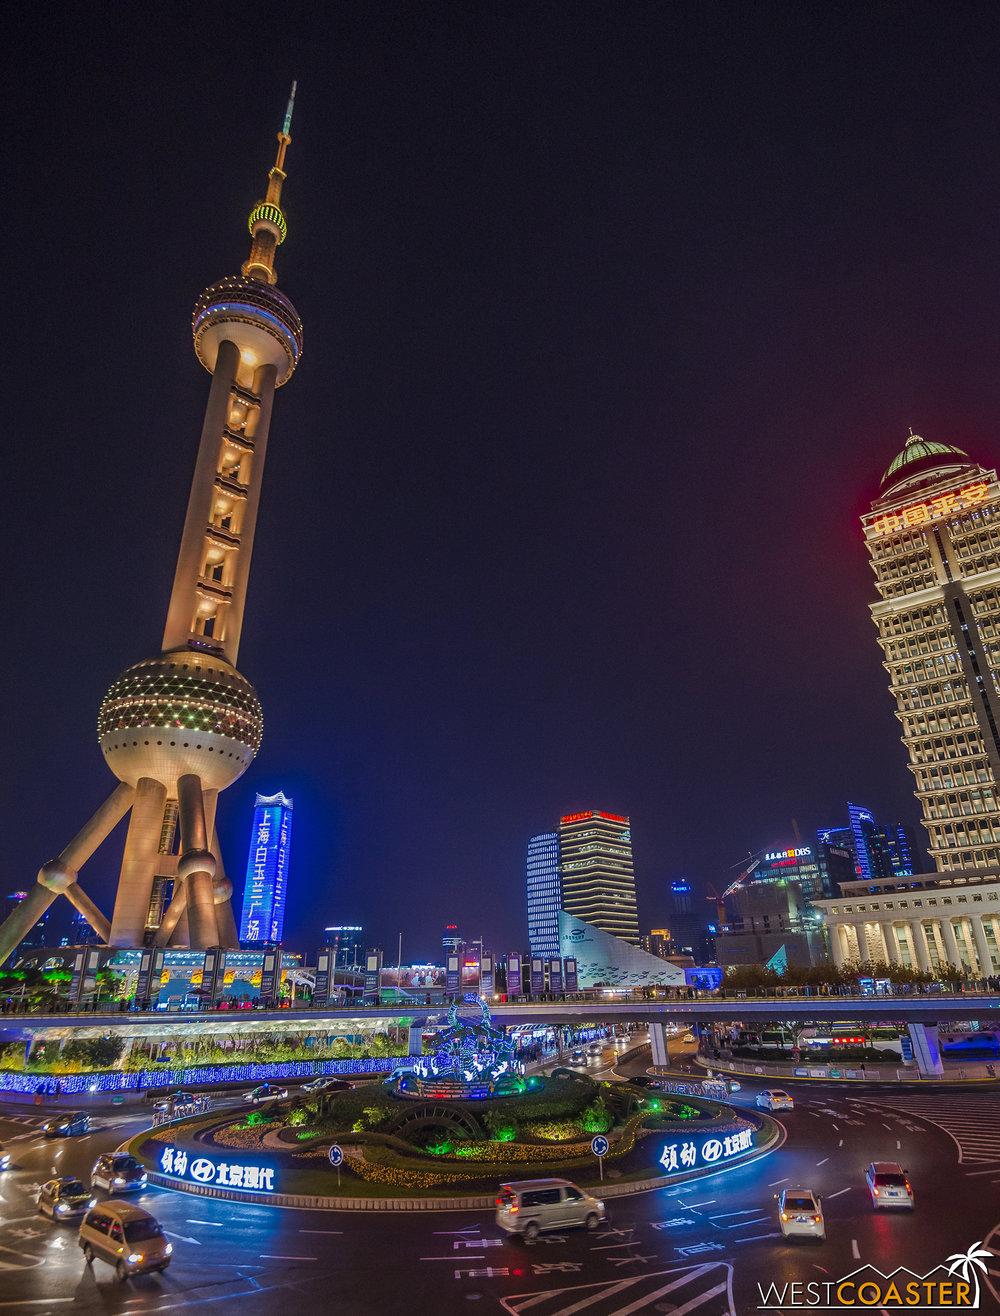 The Oriental Pearl Television Tower is iconic and unique and anchors the Lujiazui part of Pudong, on the east bank of the Huangpu River that runs through the city.